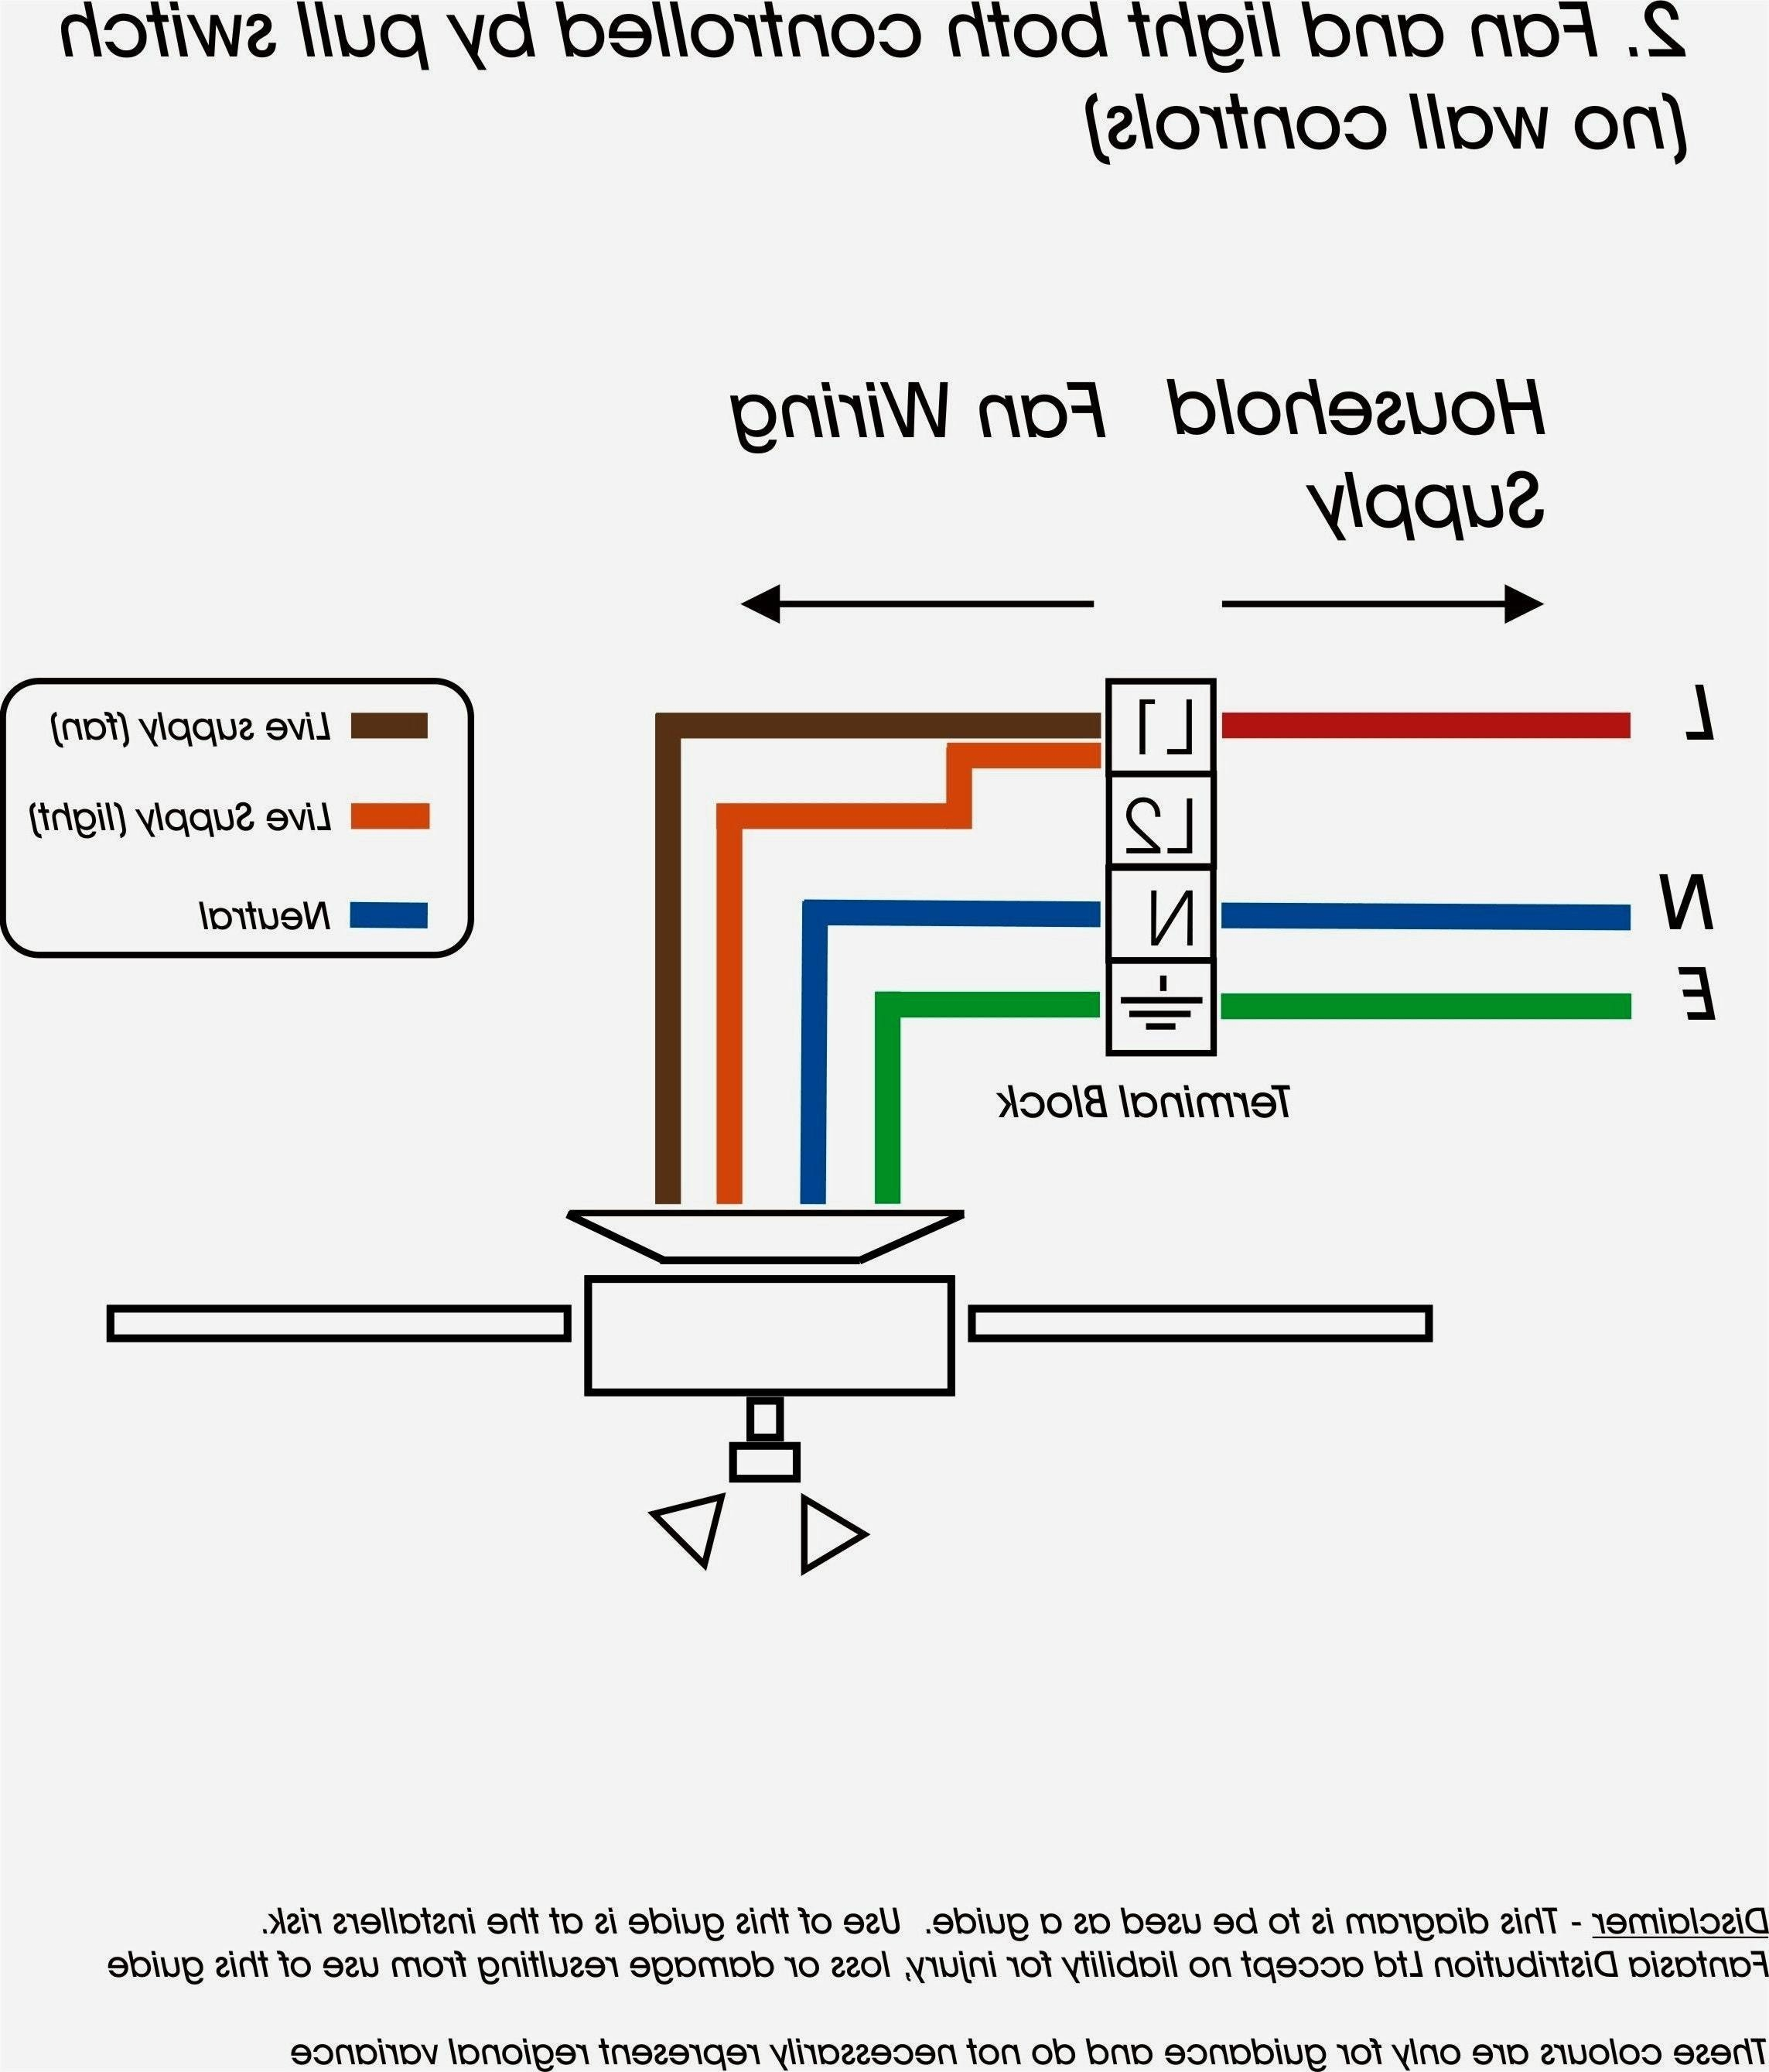 myers pump wiring diagram Collection-Myers Inverter Wiring Diagram Inspirationa Lights Wiring Diagram for Myers Wire Center • 20-m